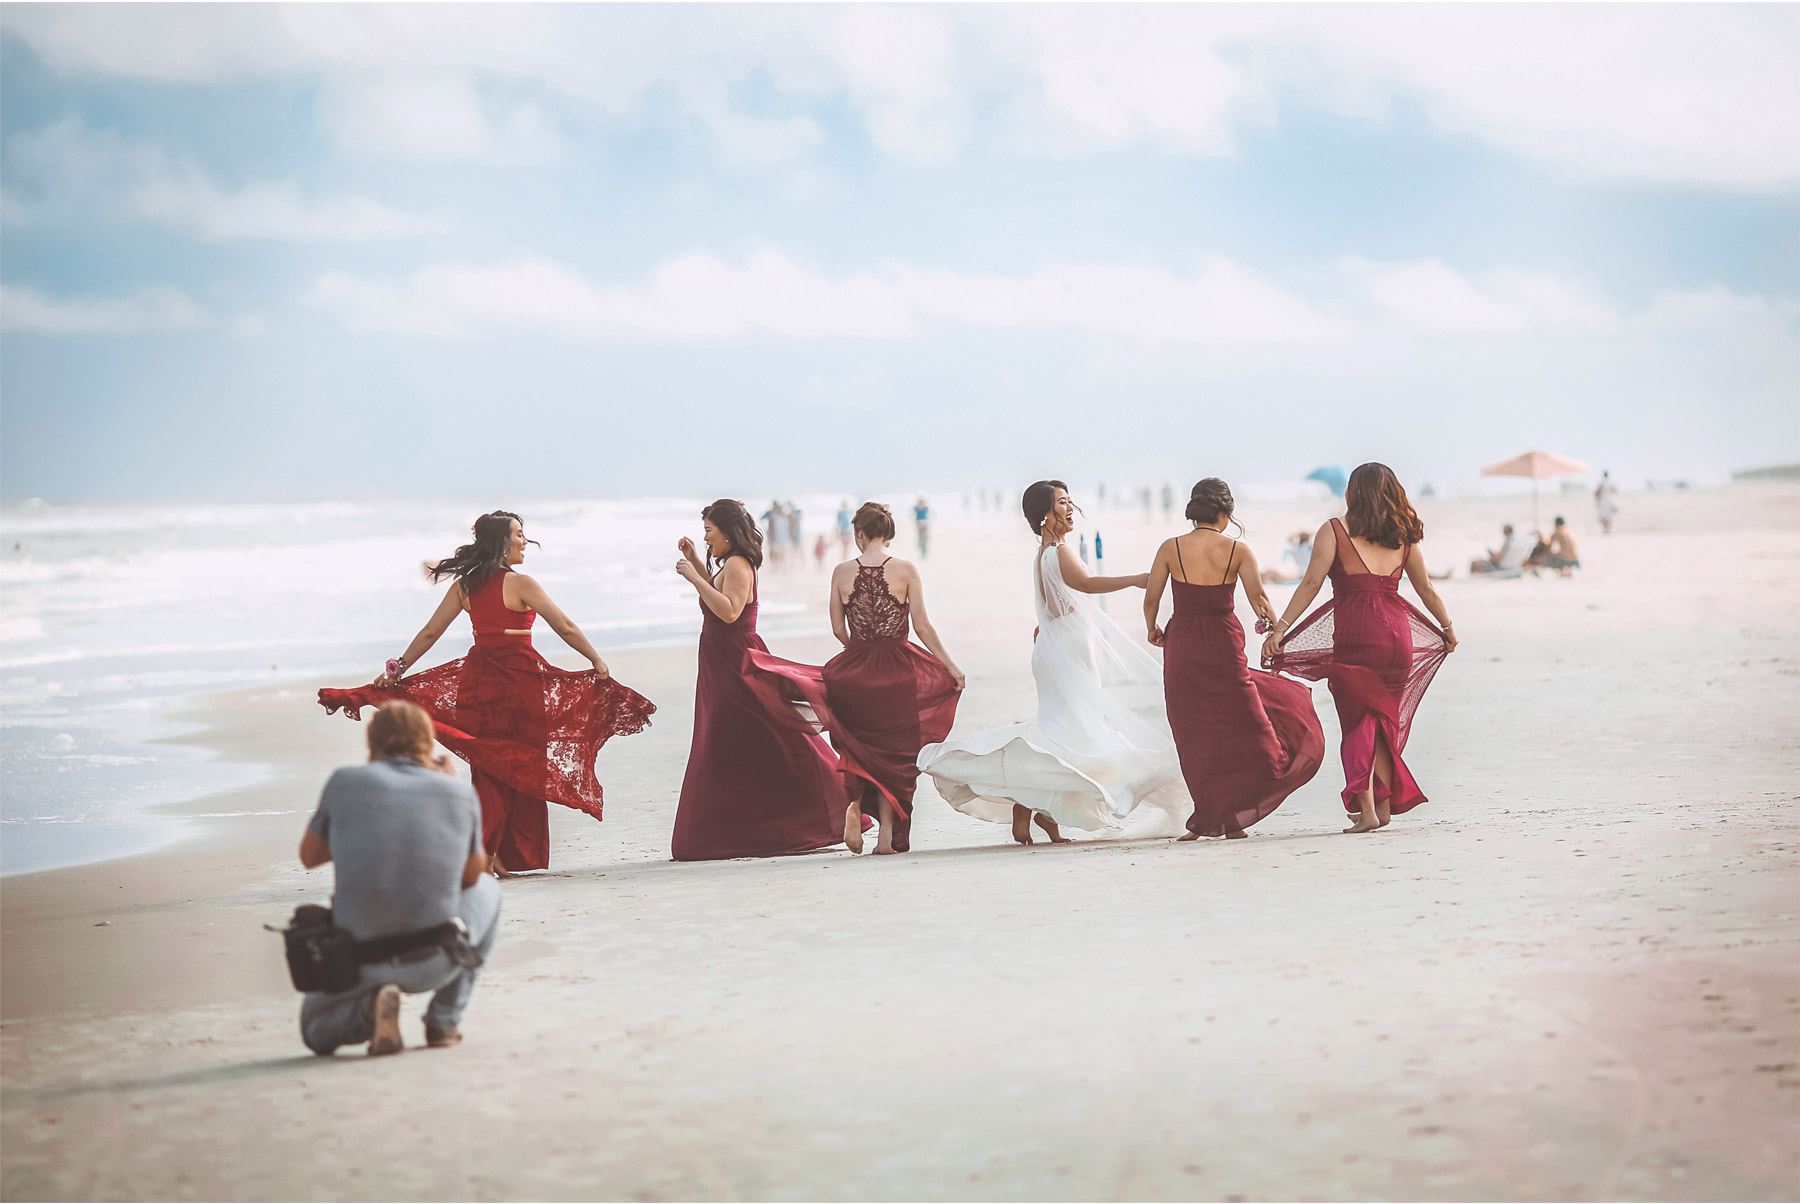 18-South-Carolina-Wedding-by-Vick-Photography-Hilton-Head-Island-Omni-Oceanfront-Hotel-Destination-Beach-Ocean-Bridesmaids-Sand-Felyn-and-Will.jpg